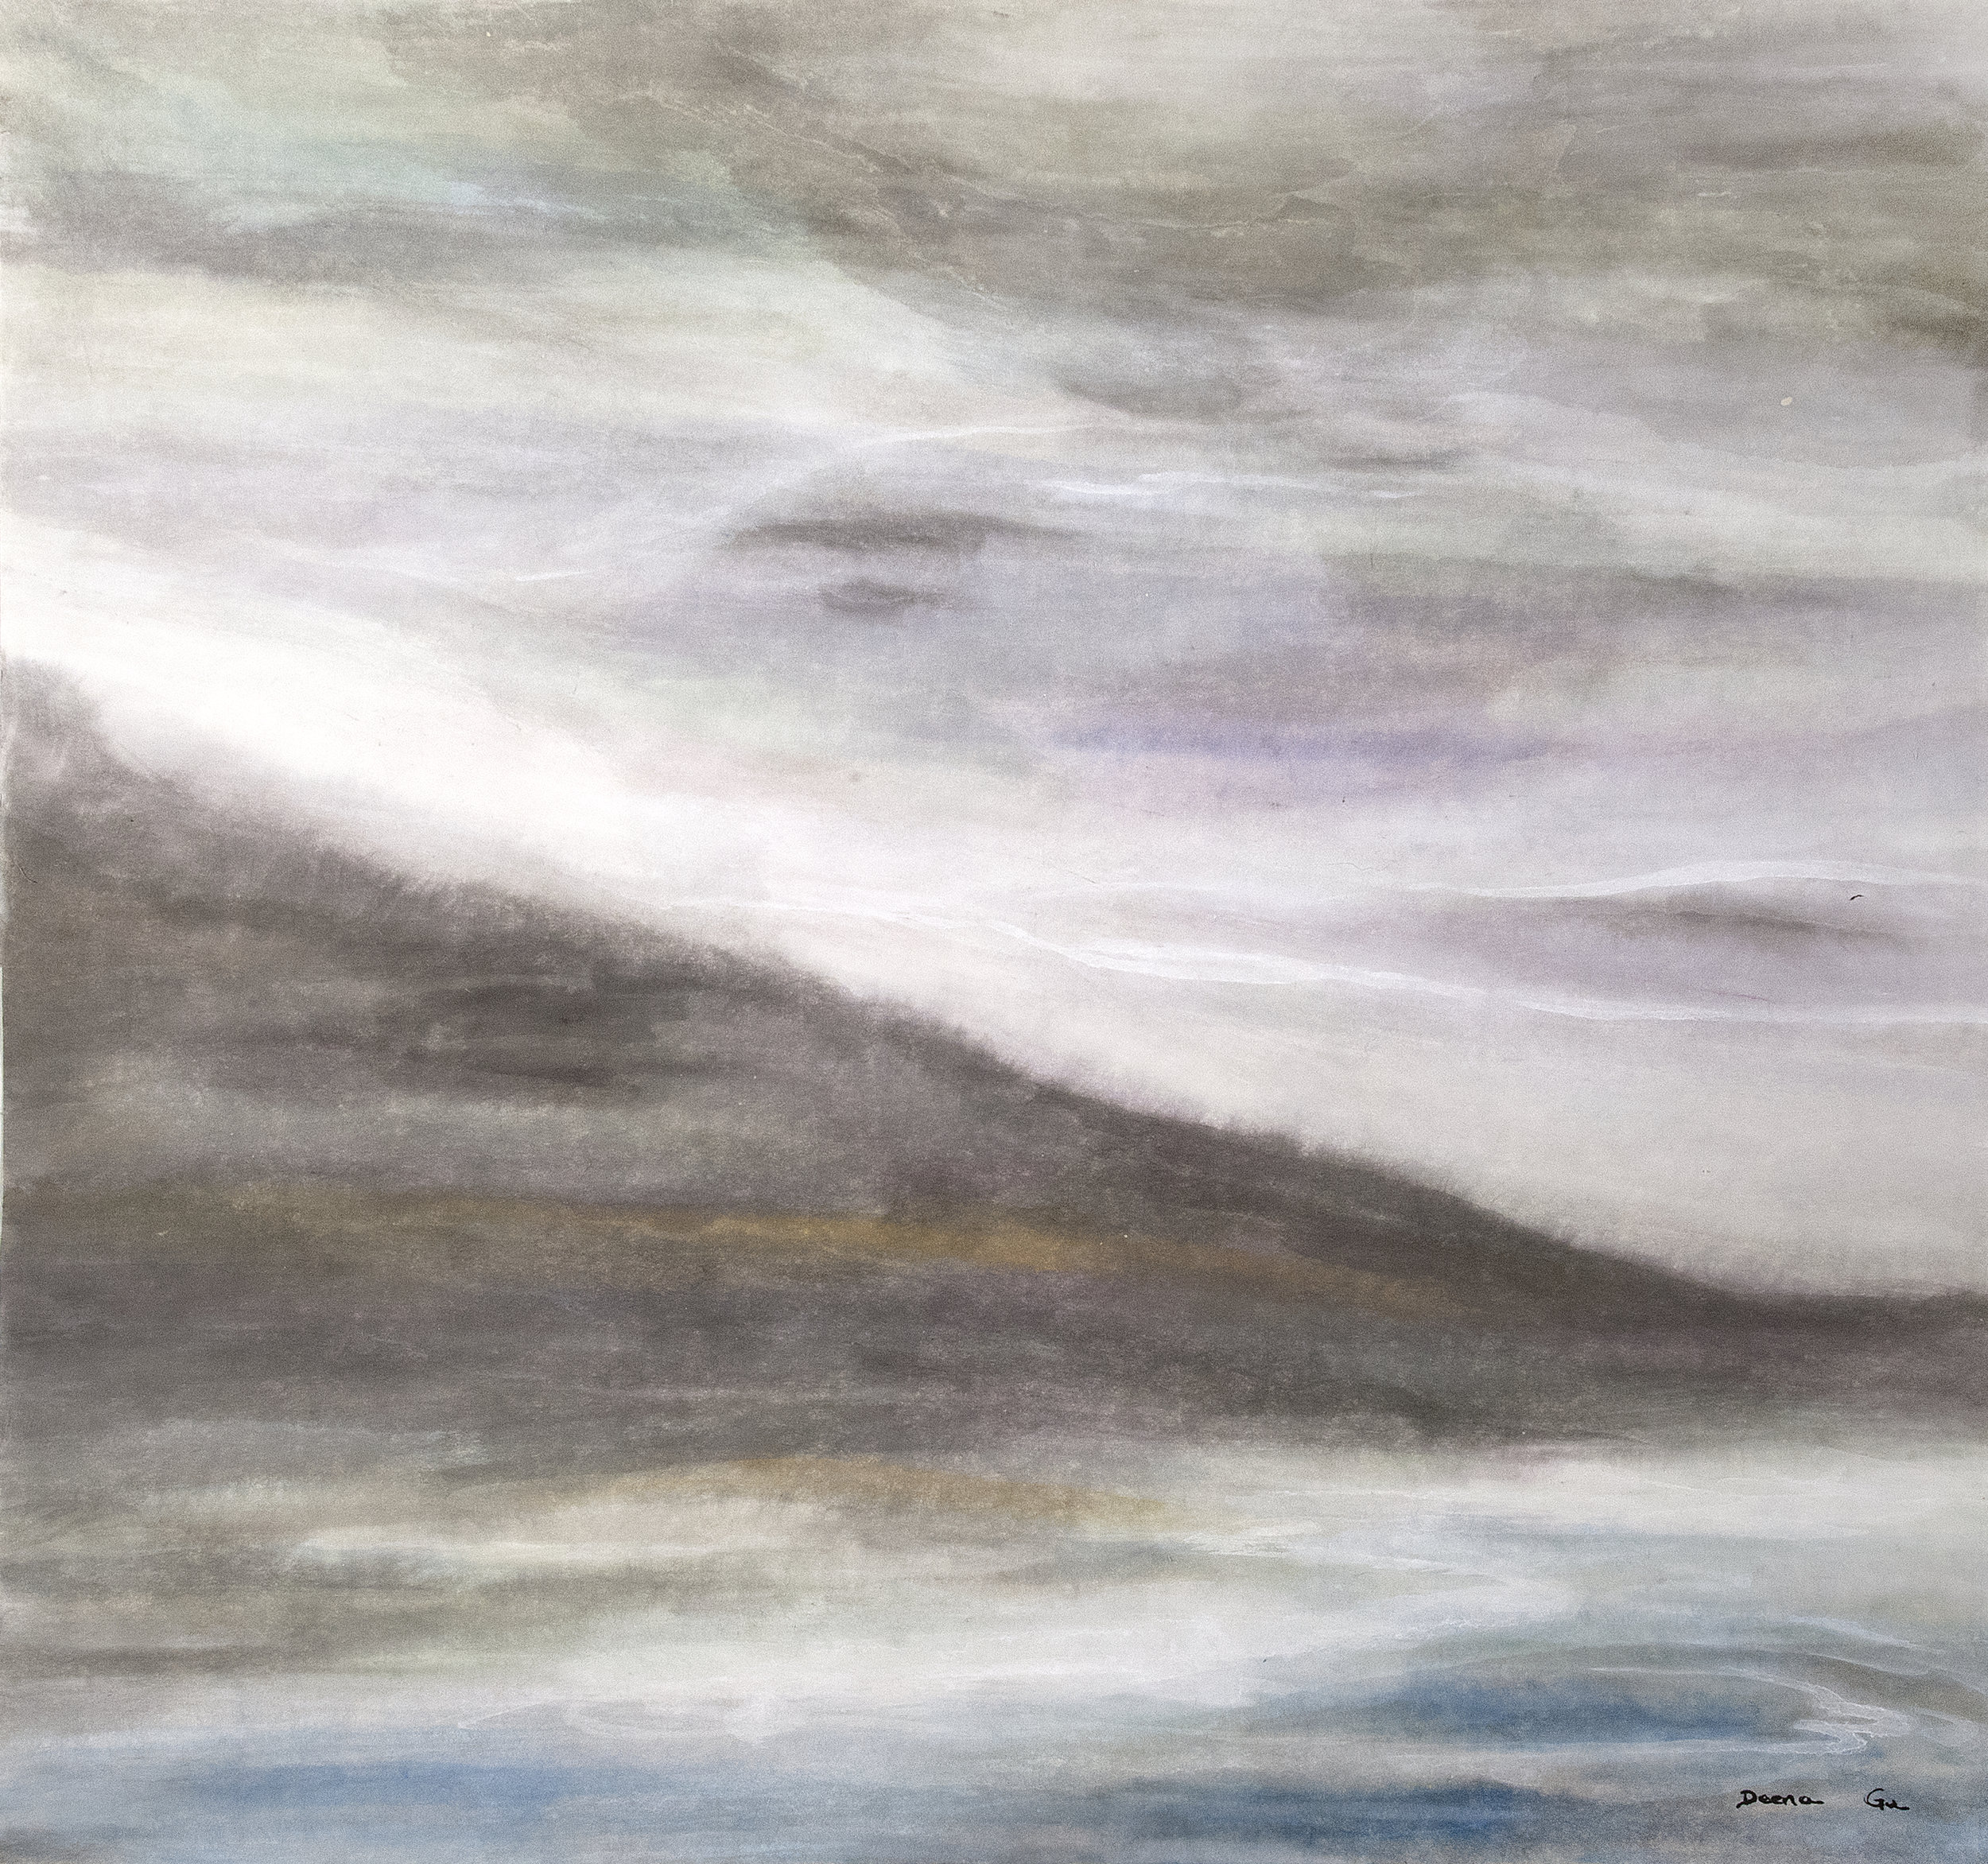 I Must Go Down to the Sea Again (2014) - Watercolor on paper, 28 3/4 x 30 in.